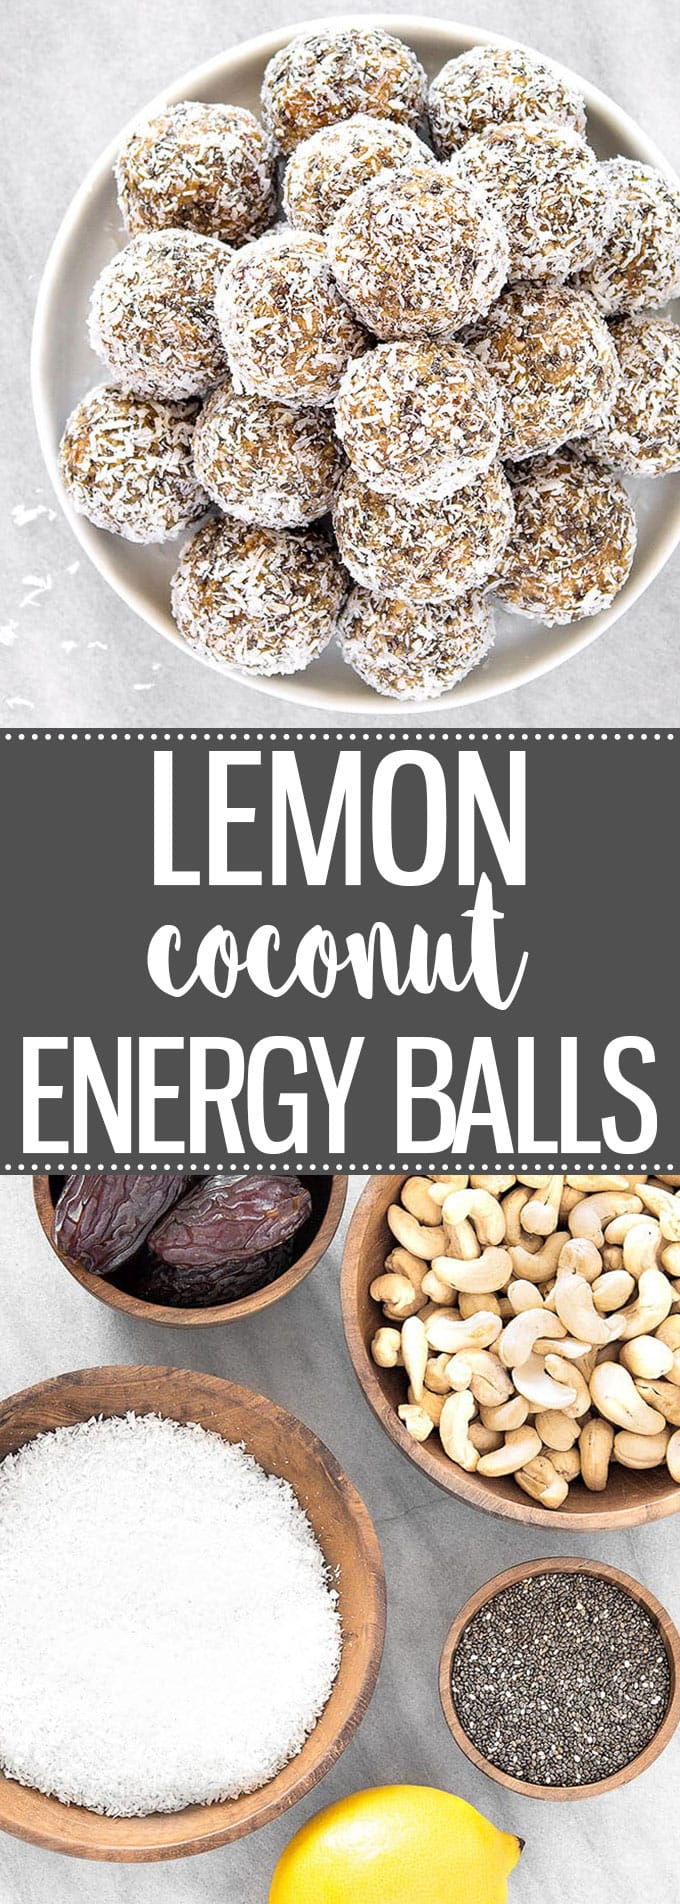 Healthy Lemon Coconut Energy Balls - No-bake snacks packed with cashew nuts, coconut, dates, chia seeds, lemon. Vegan, Paleo, Gluten-Free. #snack #healthyeating #cleaneating #healthyrecipes #rawfood #easyrecipe #energyballs #energybites #coconut #lemon